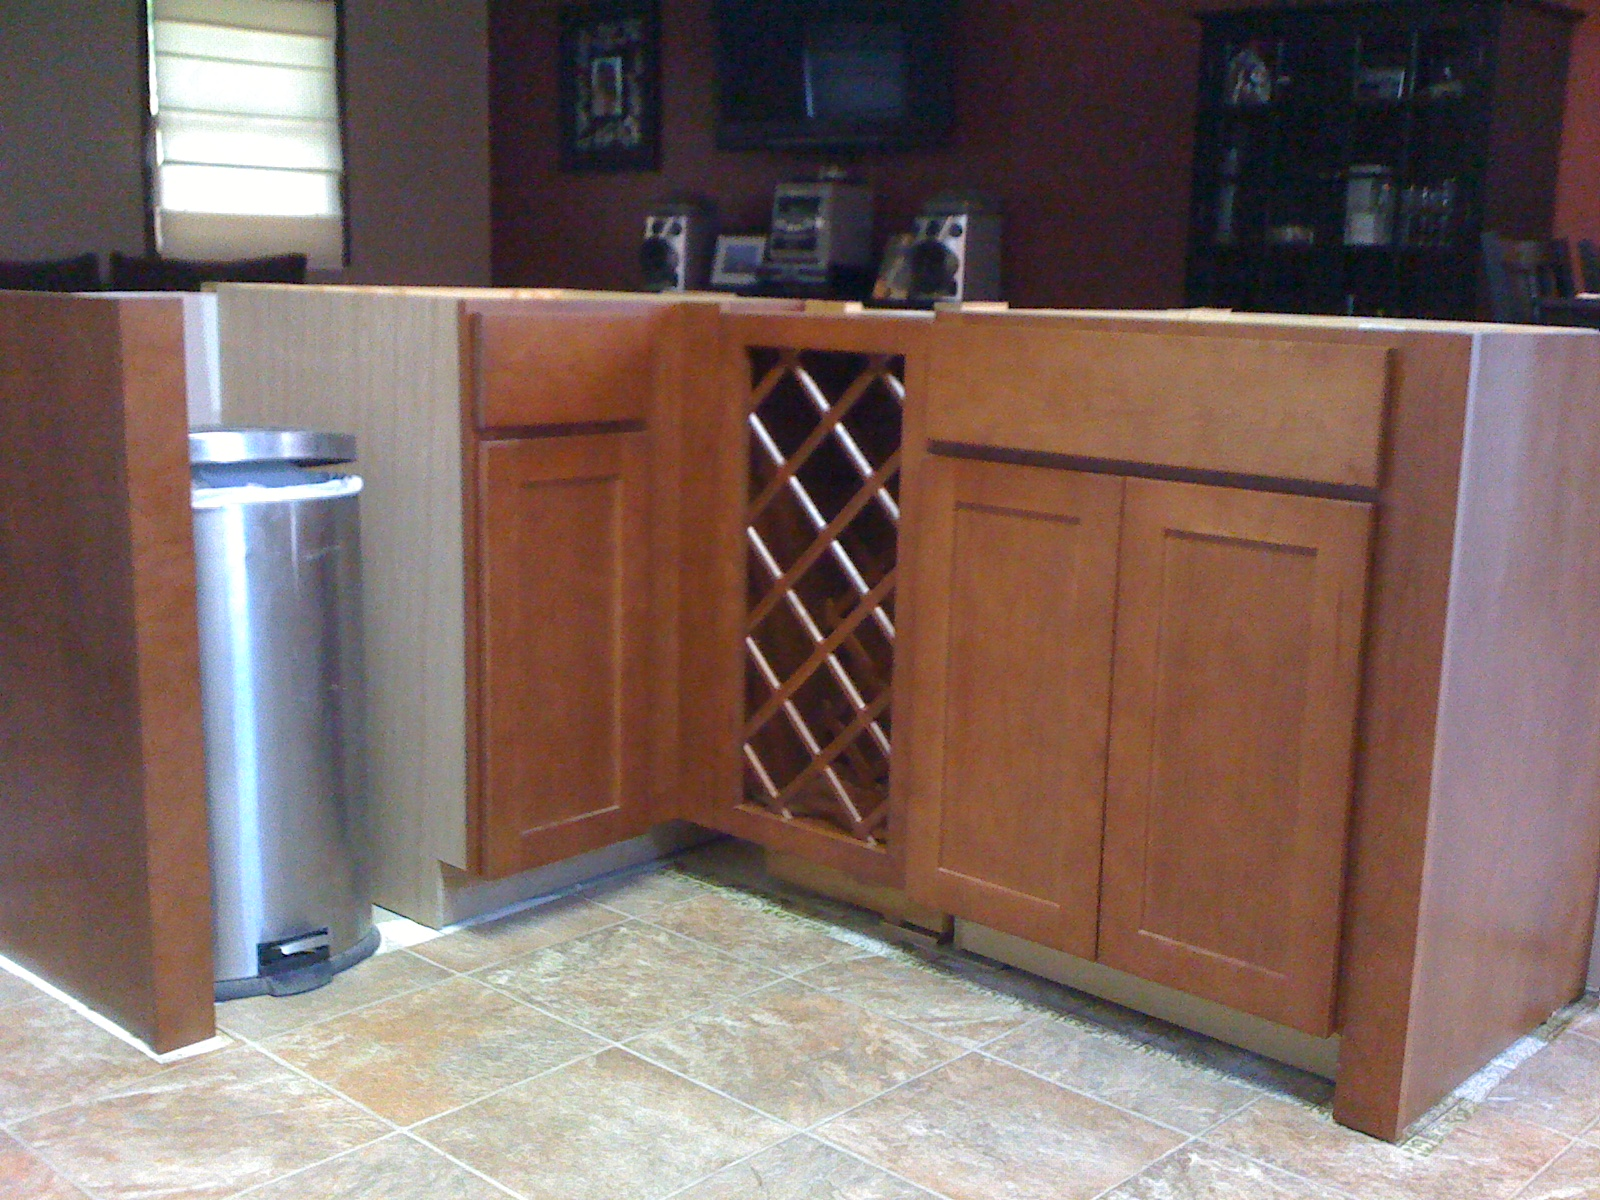 18 Deep Base Kitchen Cabinets Installing 30 Inch Base Wine Rack Next To Base Cabinets Granite